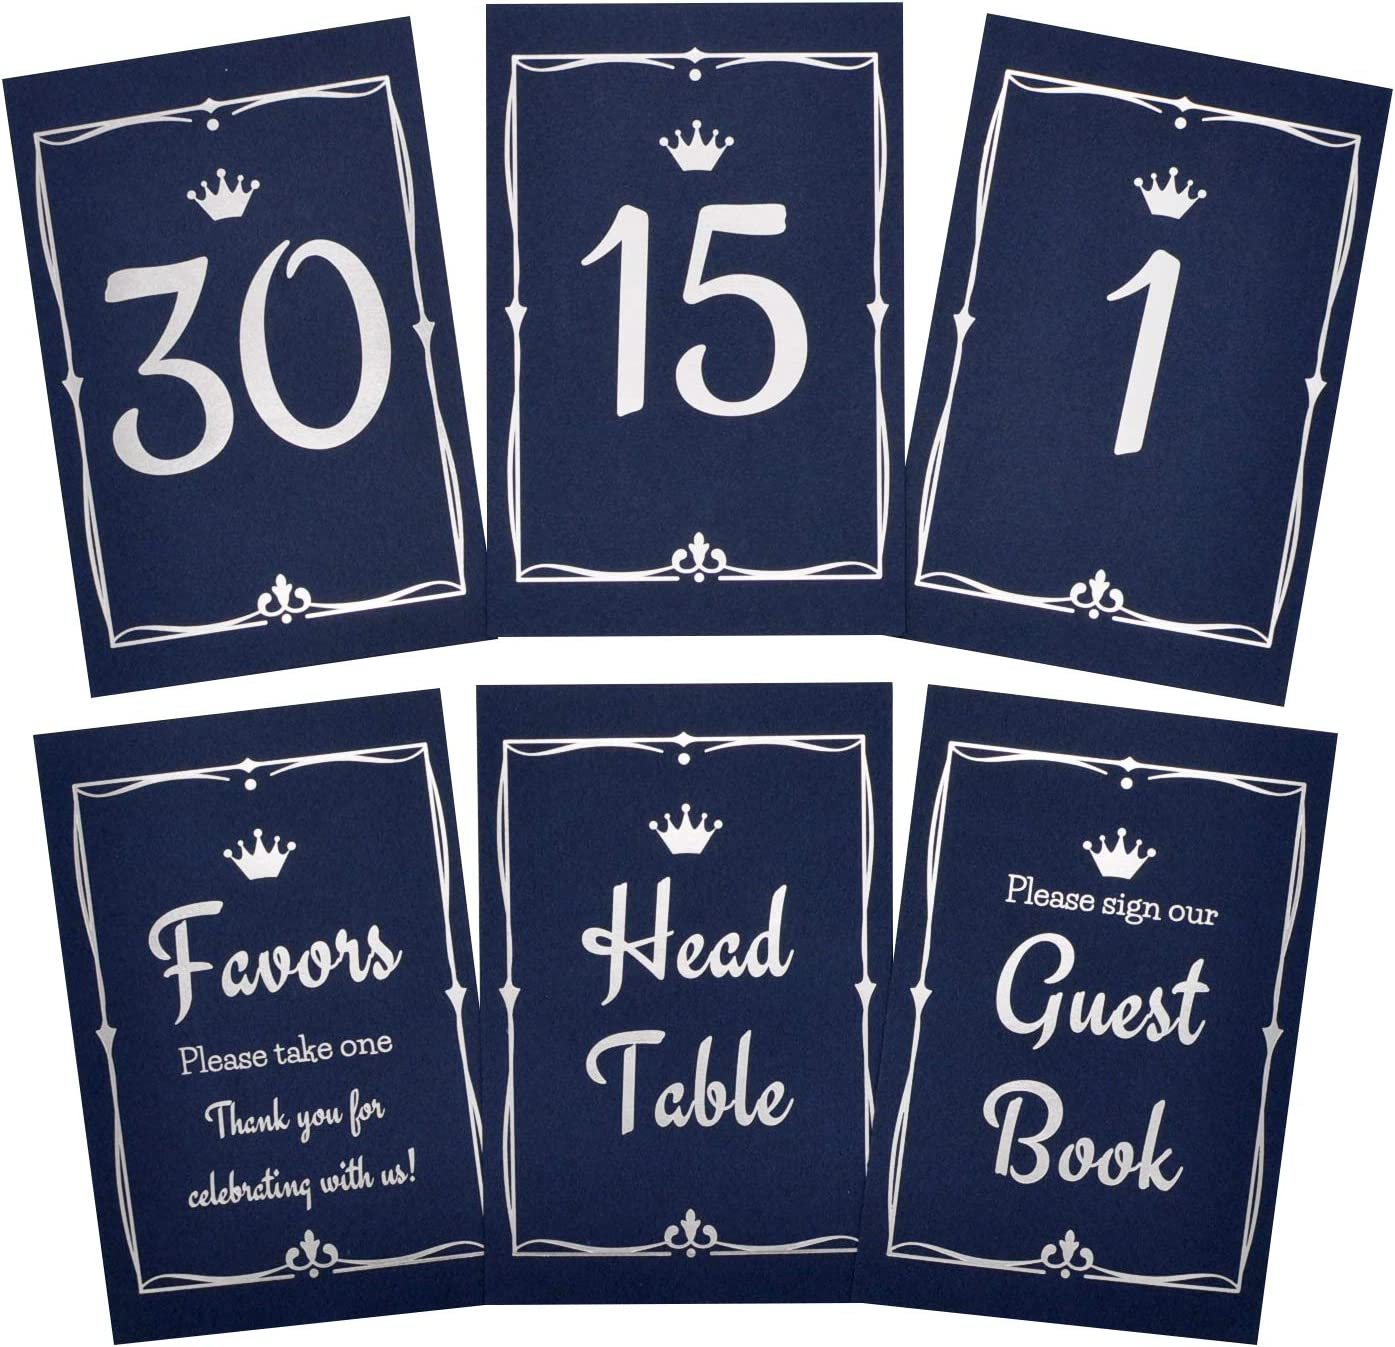 eggblu Wedding Table Numbers Indefinitely 1-30 Plus Useful Excellence Signs for 3 Card H